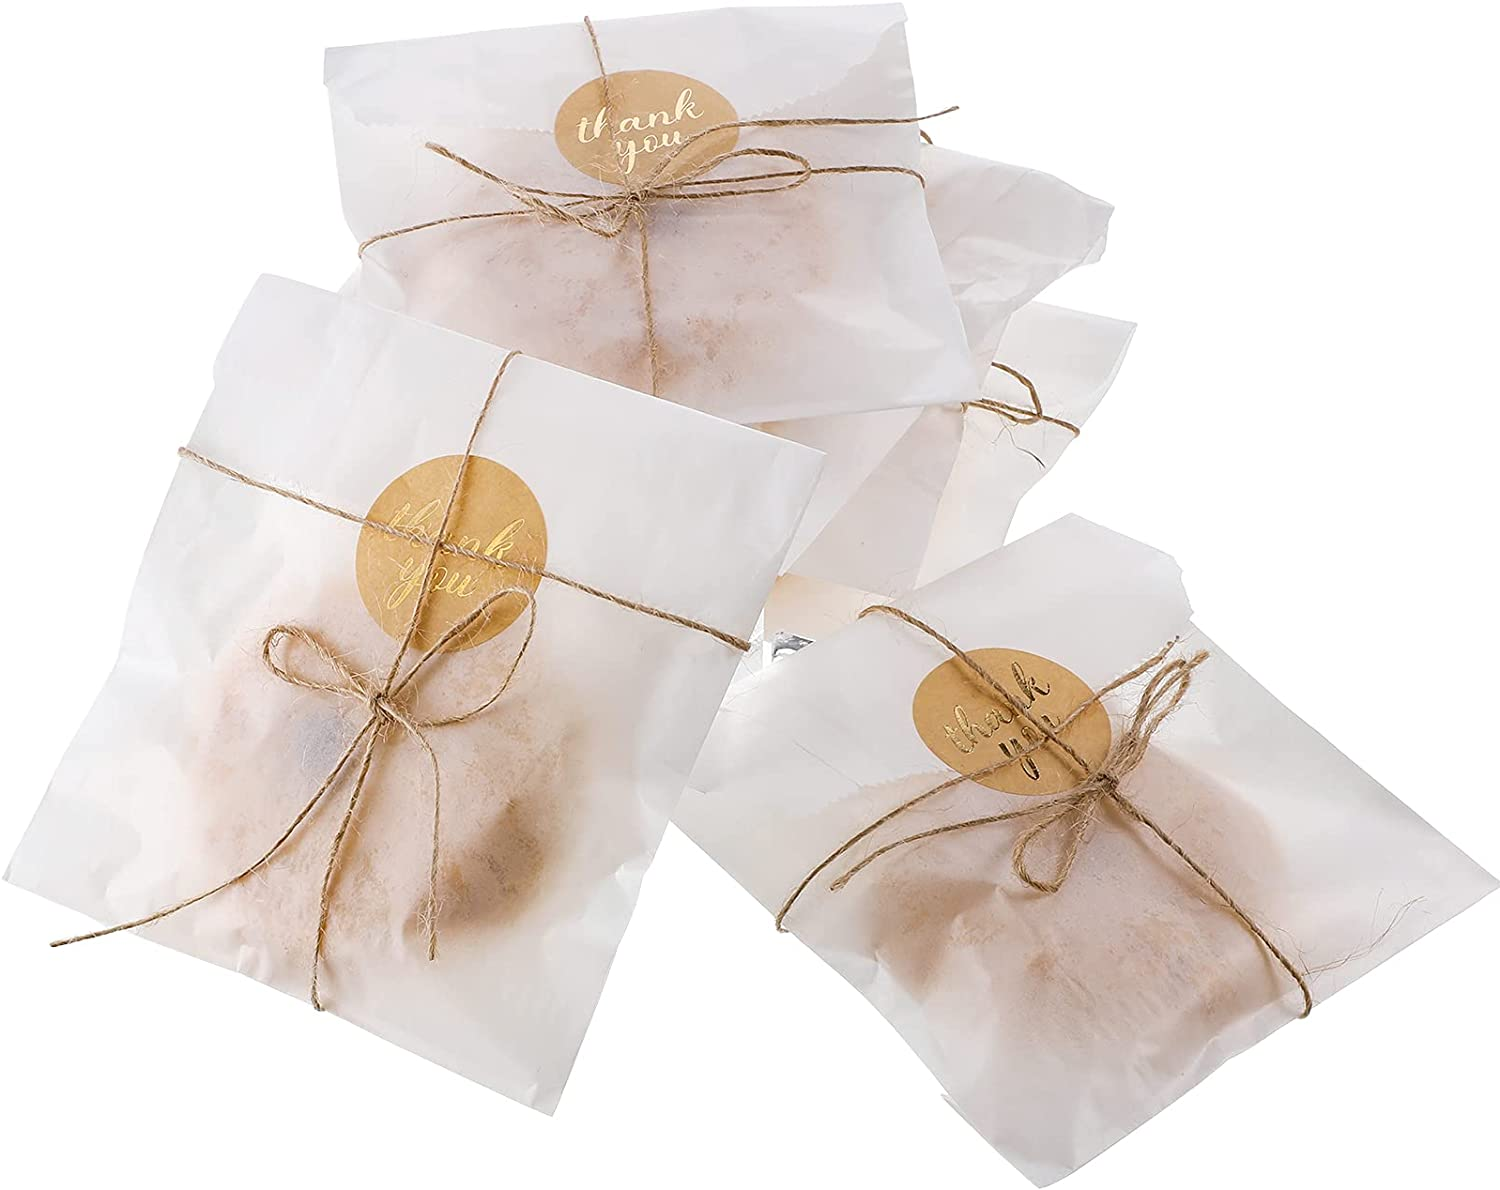 100 Pieces Glassine Wax Paper Bag Cookie Bags Gourmet Bags, 100 Pieces Thank You Label Stickers and 263 Feet Jute Rope for Party Favors, Candy Cookie Chocolate